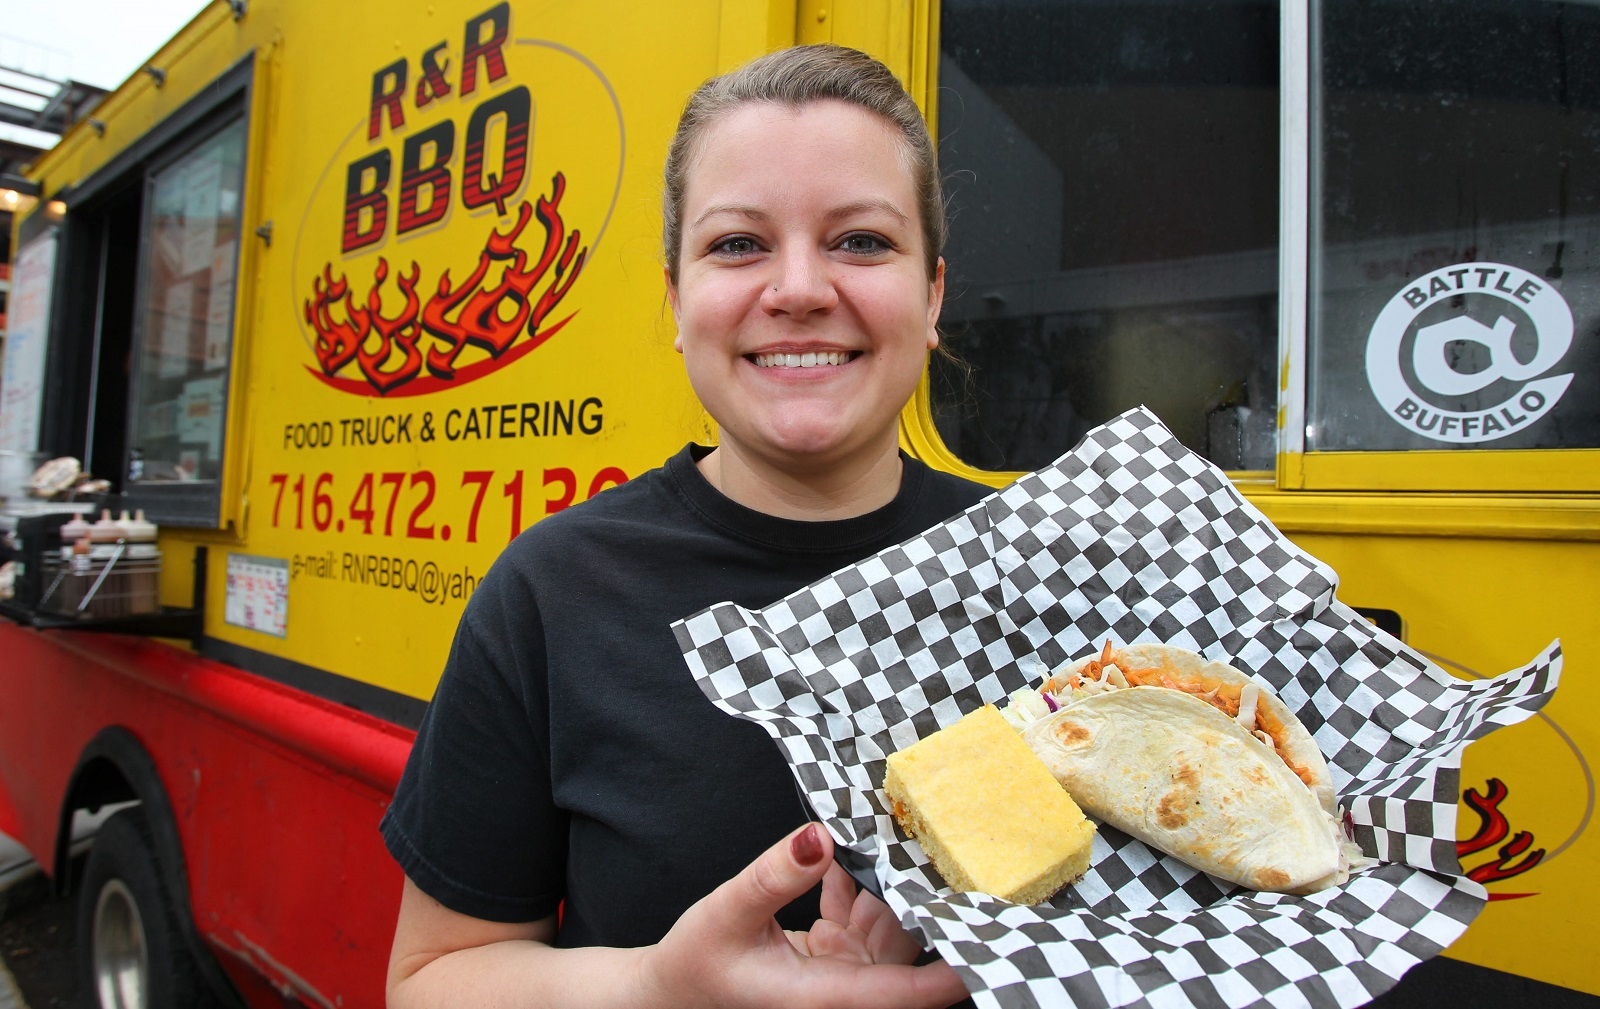 Owner Renee Allen presents a pulled pork taco from R&R BBQ Truck. (Mark Mulville/Buffalo News file photo)